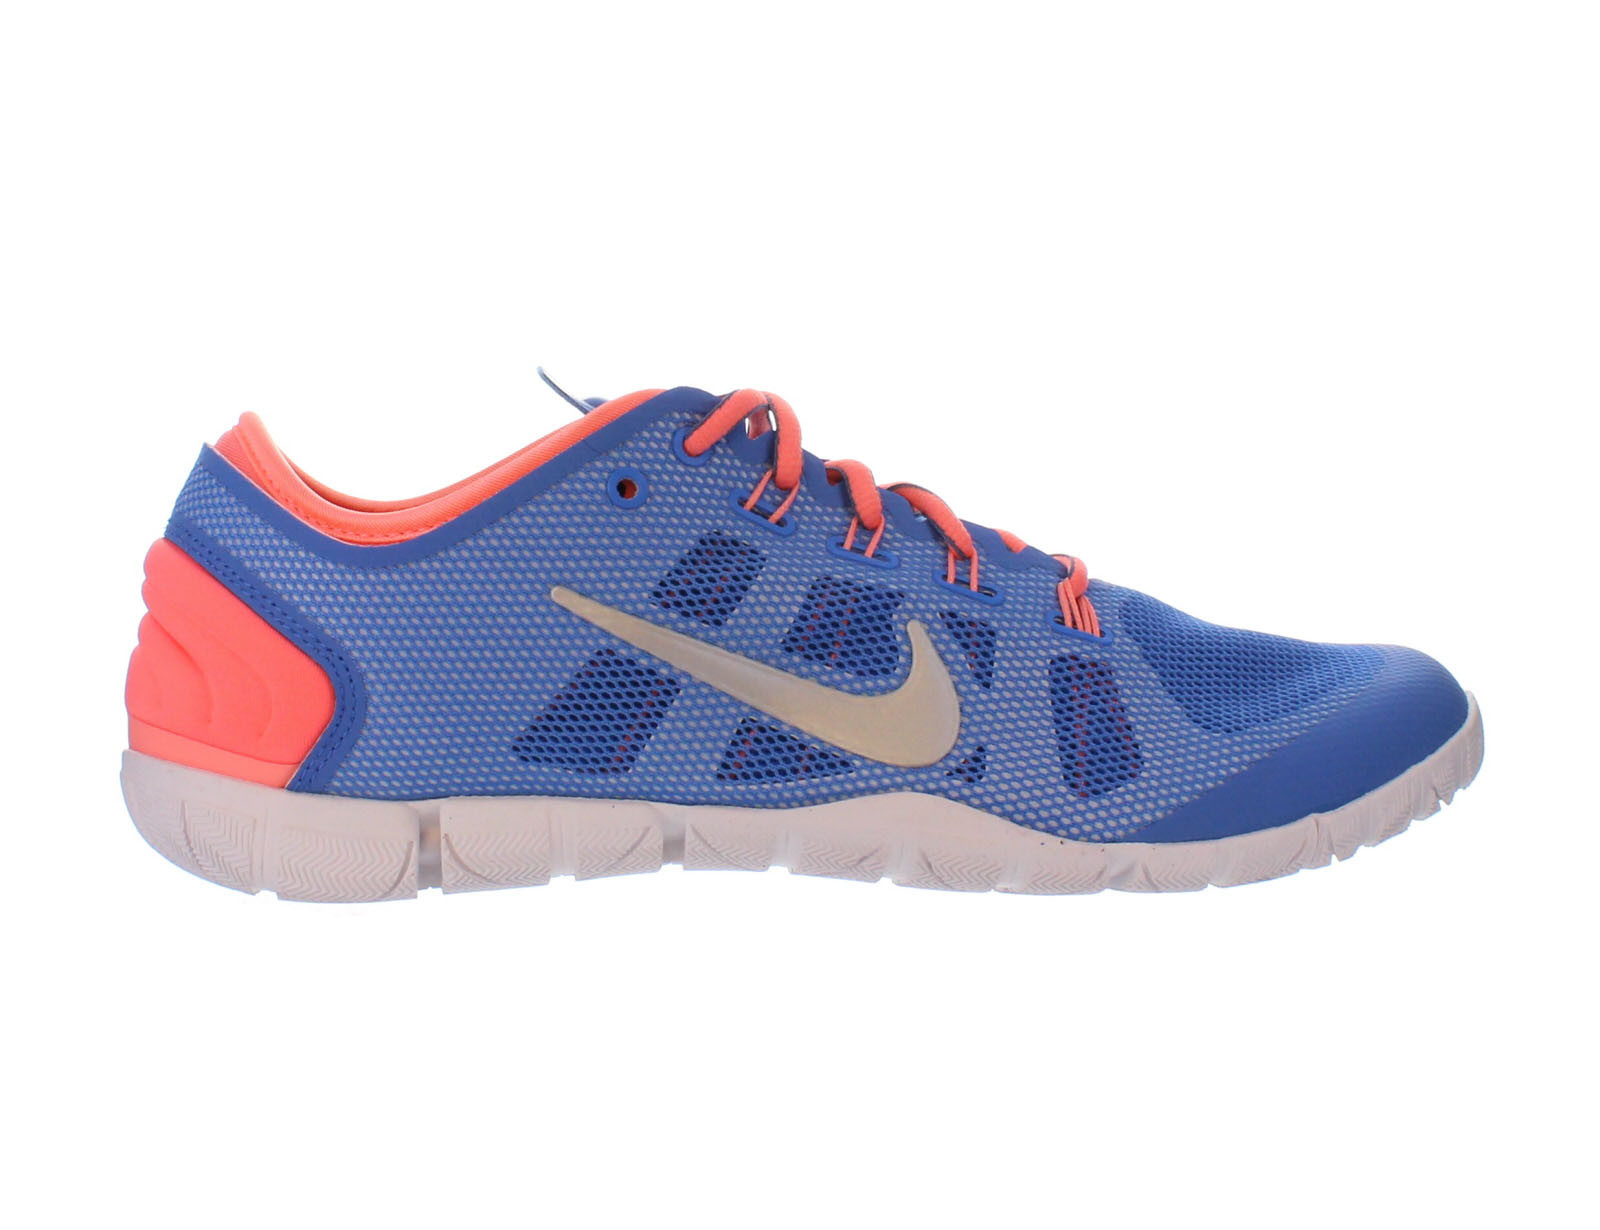 premium selection cbc23 c8ad3 ... amazon womens nike free bionic blue metallic silver atomic pink 599269  40 e33af b8b1b